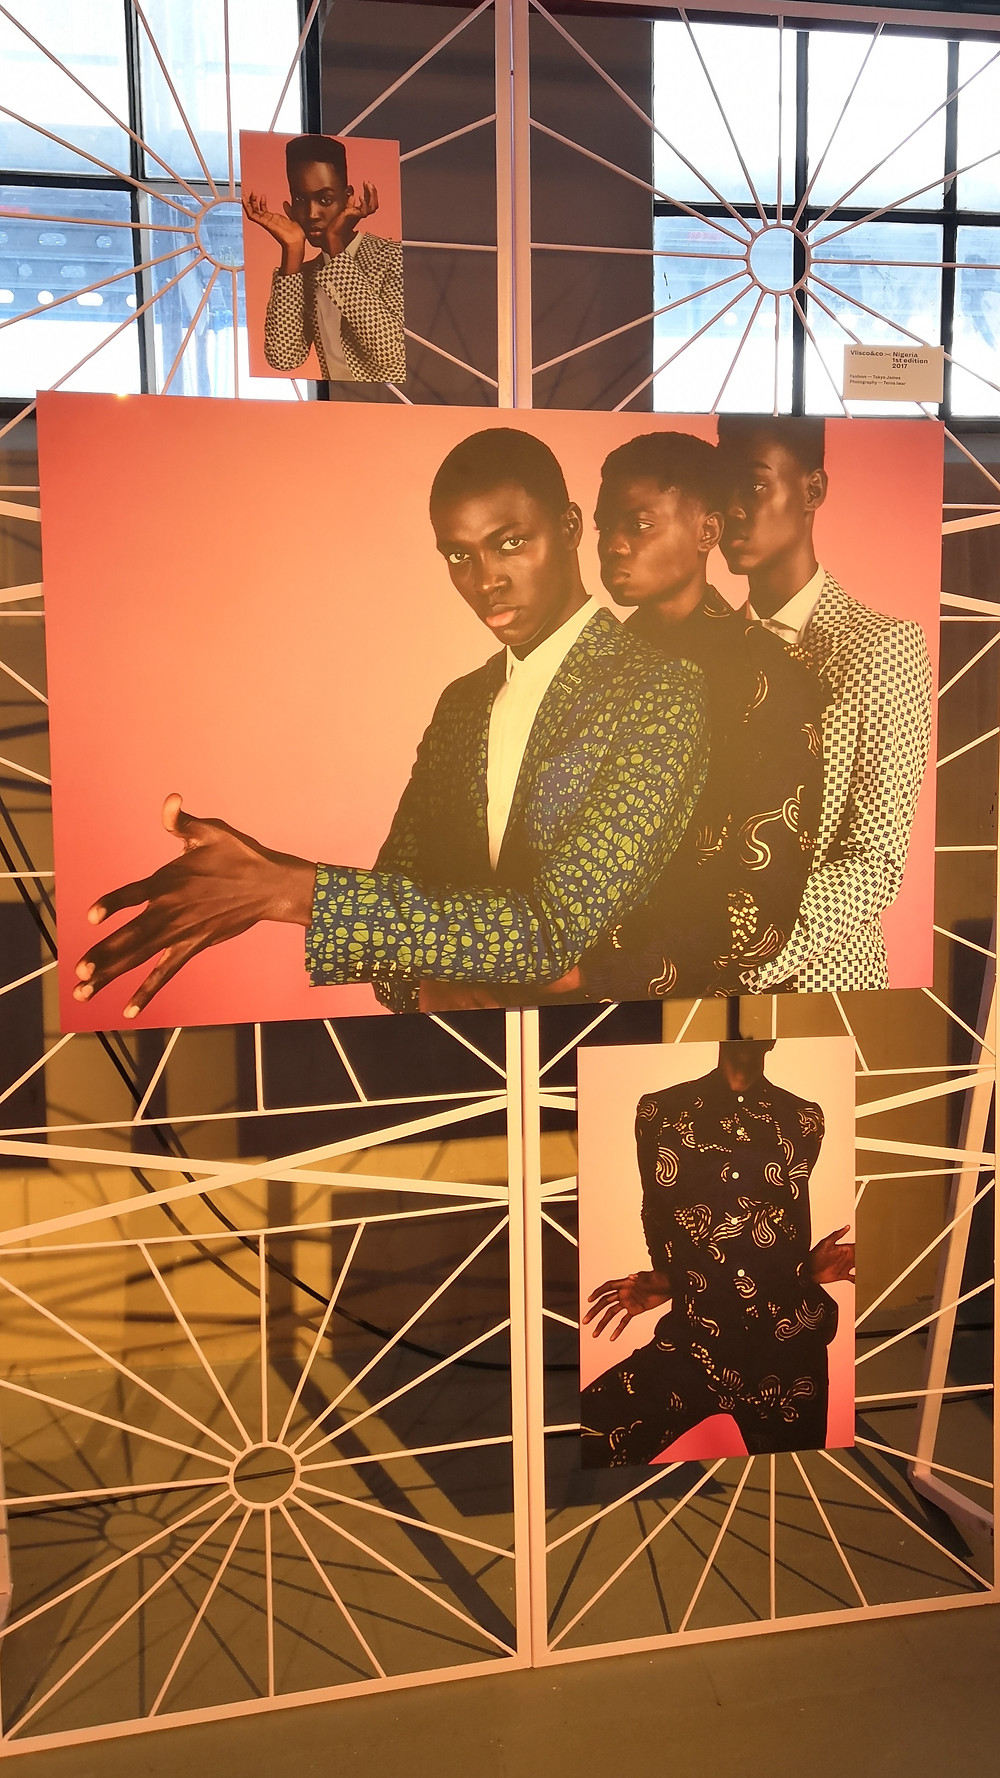 A pink metal frame holding three photos of young black men; two solo portraits and one photo with three men.